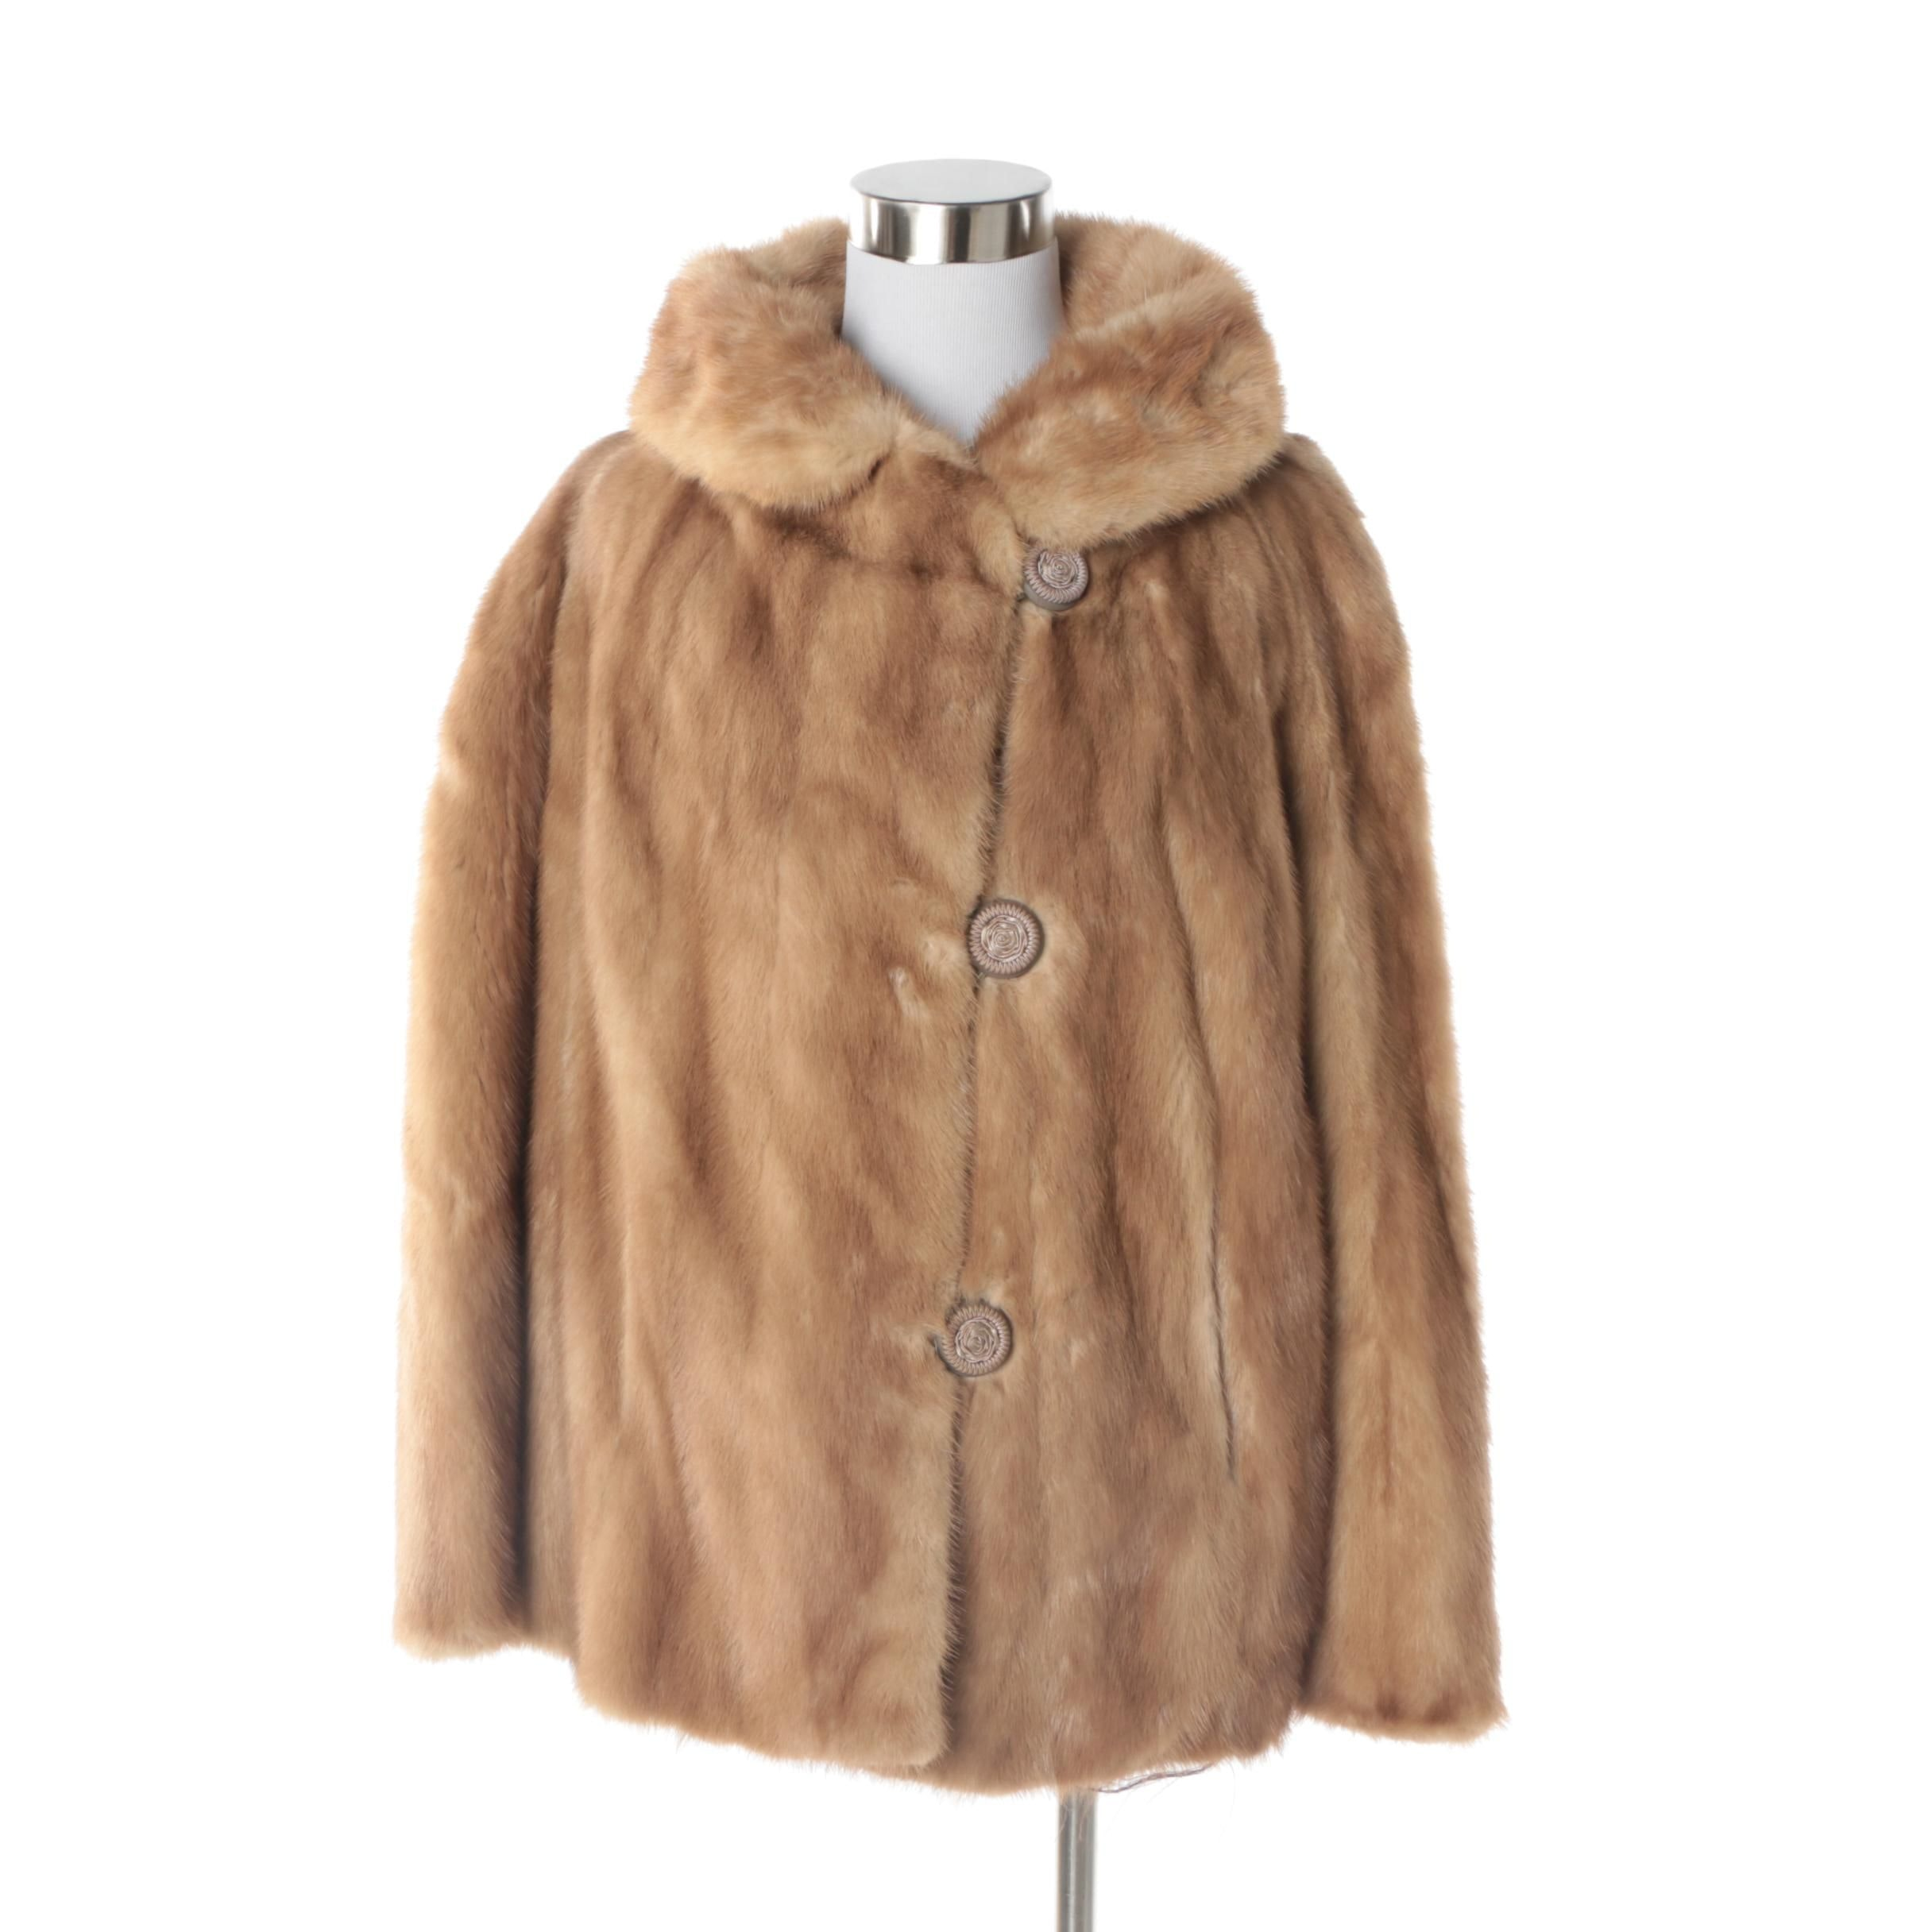 Women's Vintage Hessel Furs Dark Blonde Mink Fur Coat